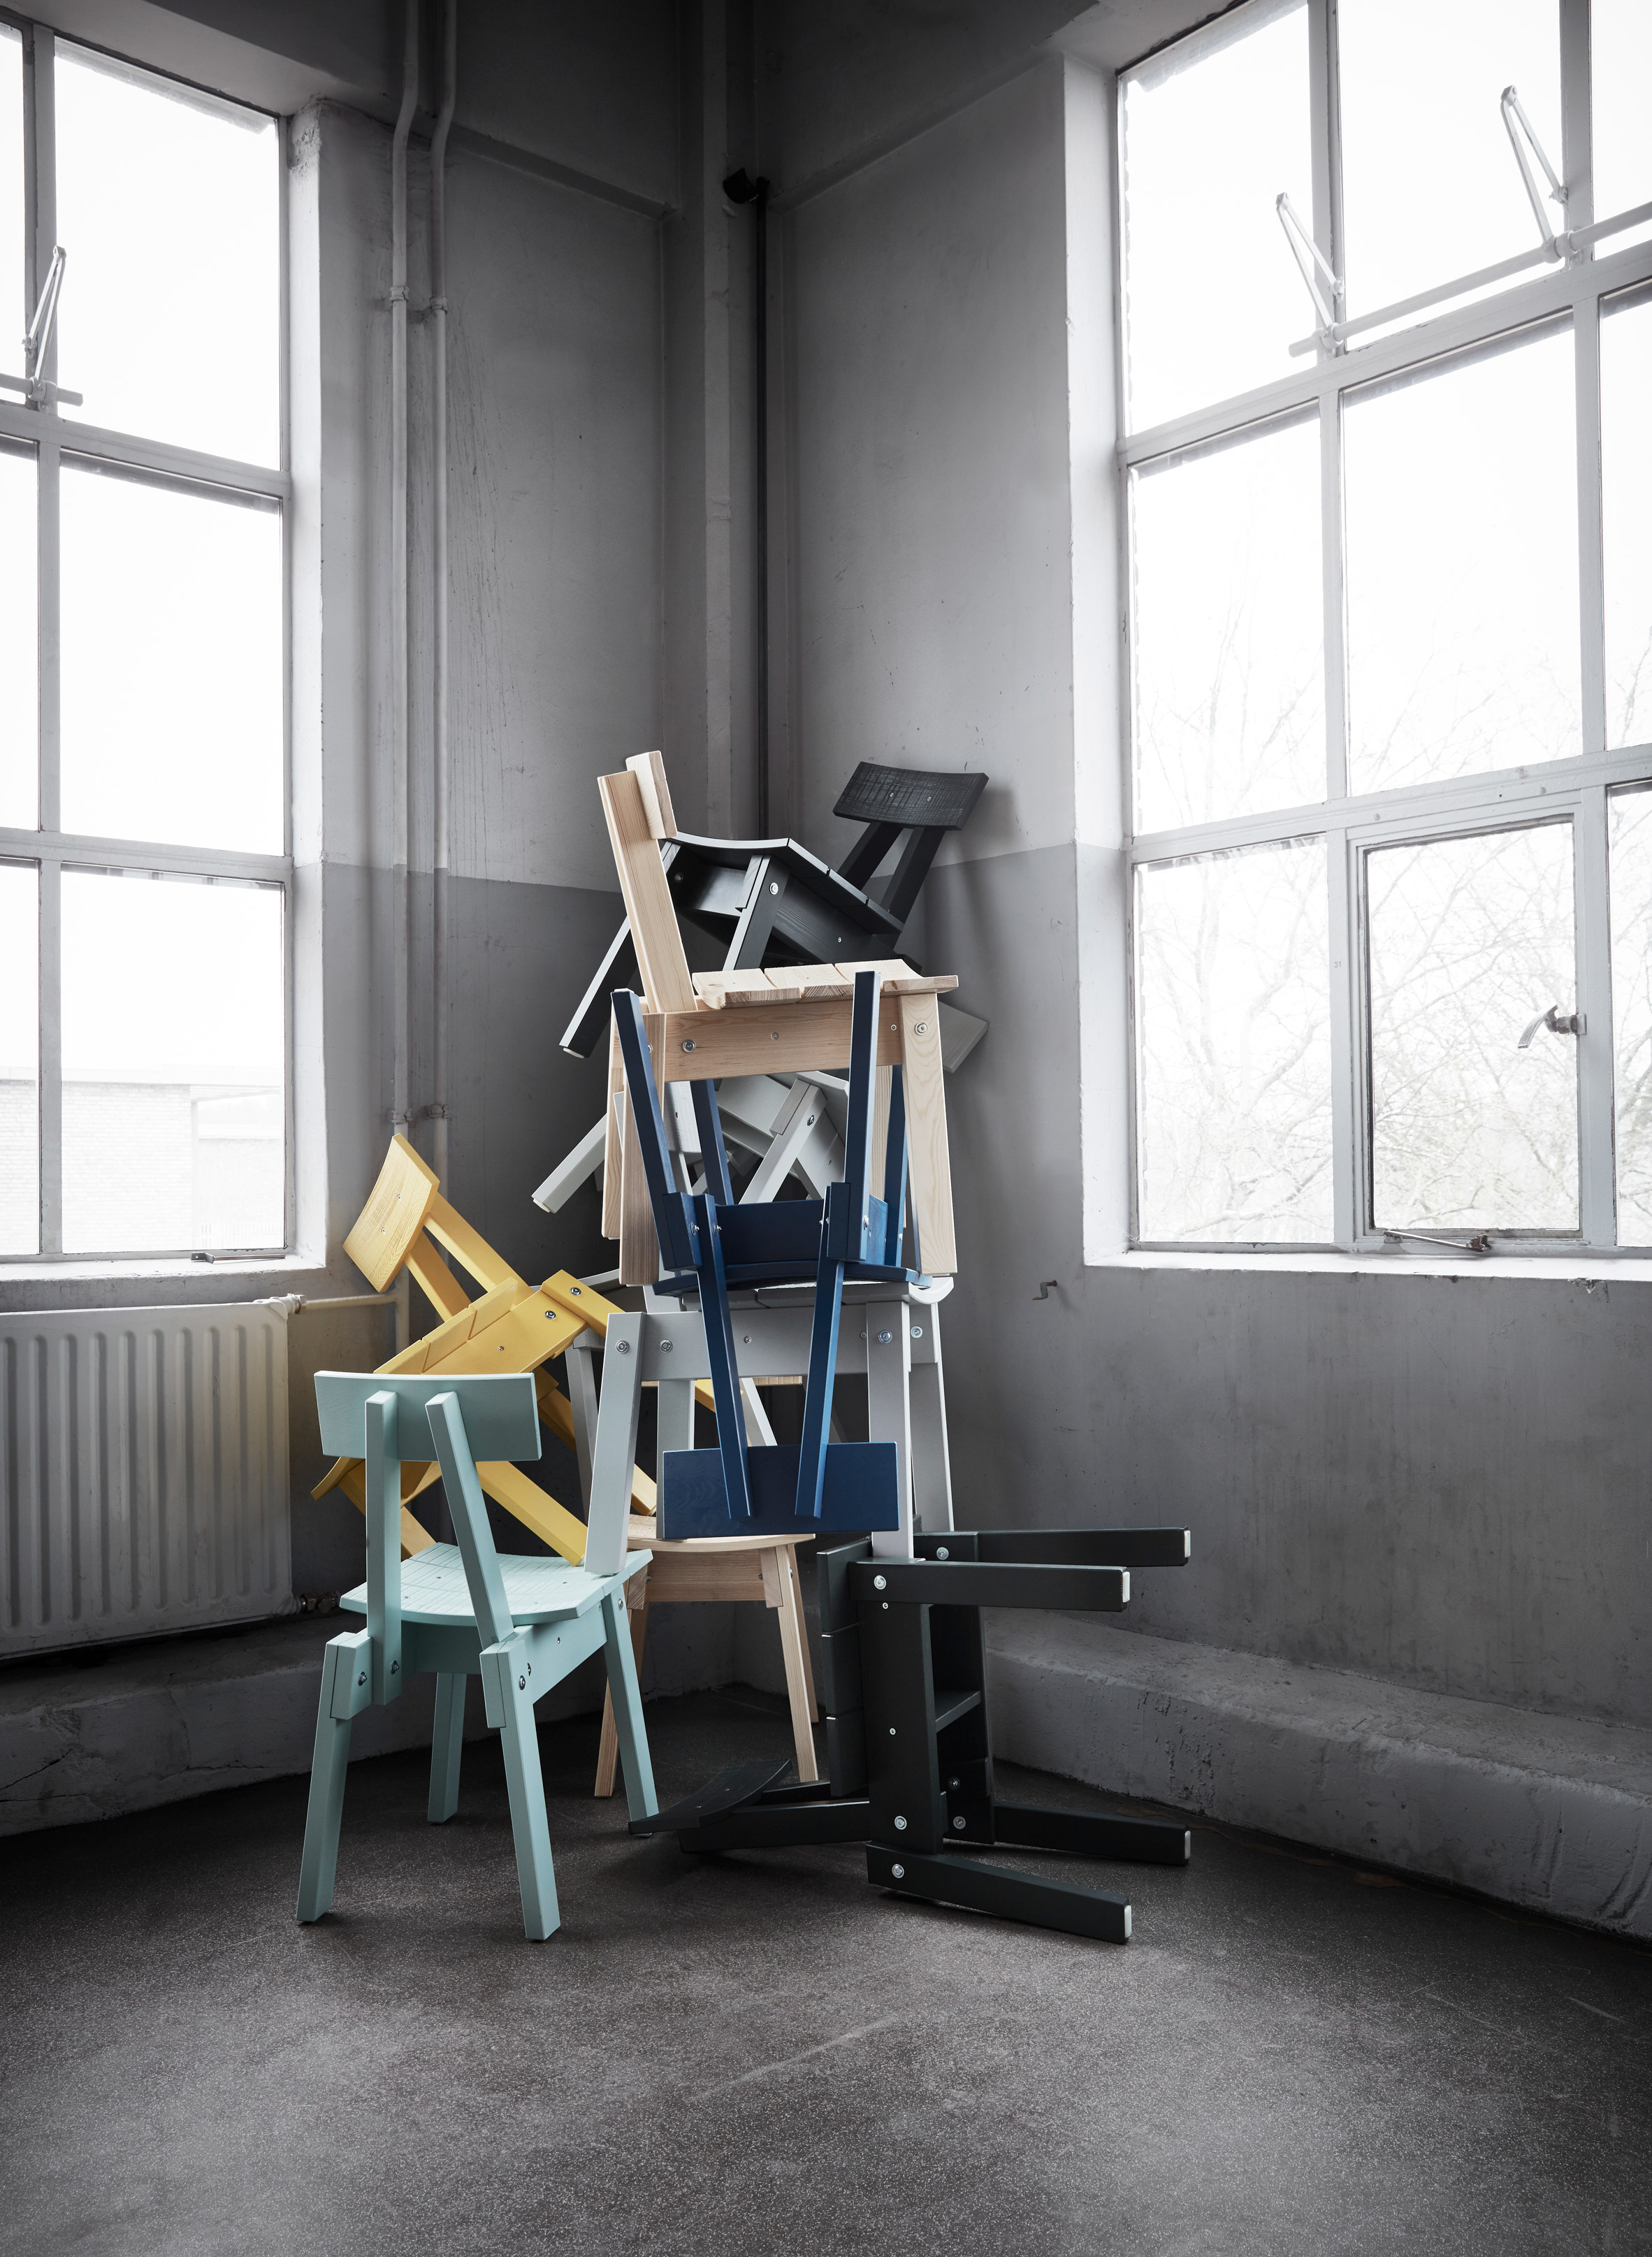 IKEA's latest collaboration with Piet Hein Eek celebrates imperfections